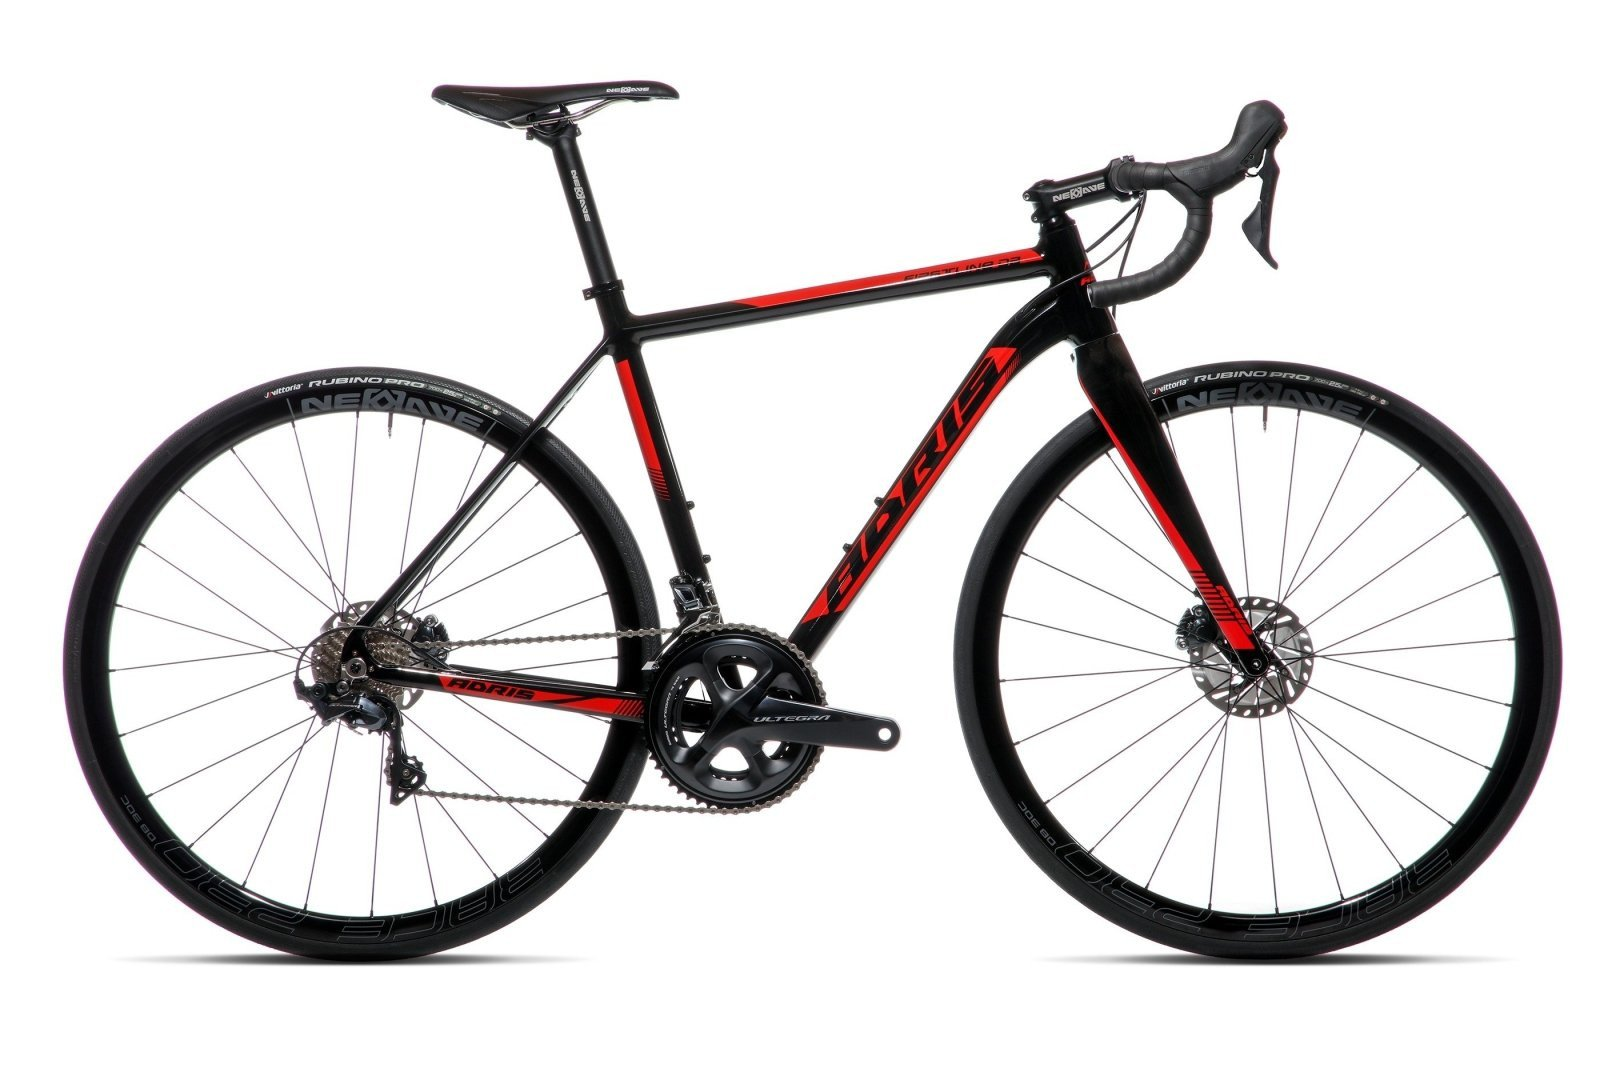 VELO ADRIS FIRSTLINE 5.3 DISC SHIMANO ULTEGRA R8020 11V